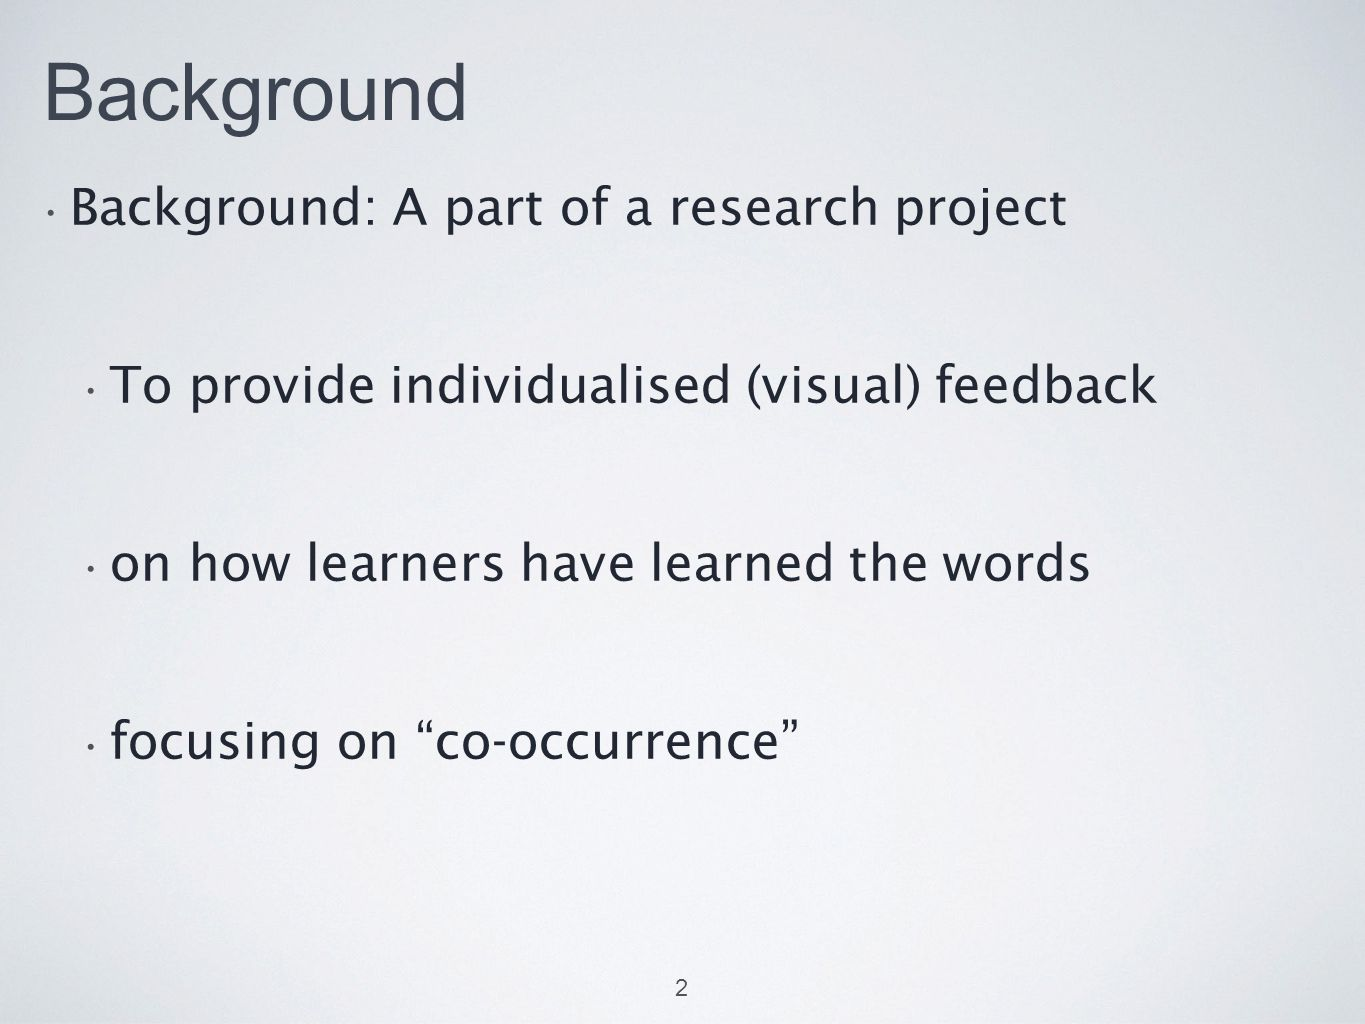 Background Background: A part of a research project To provide individualised (visual) feedback on how learners have learned the words focusing on co-occurrence 3 Aotani, Kameyama, Sugino, & Amaya (2009) Aotani, Kameyama, & Sugino (2010a) (polysemous) Adjective – Noun run – Noun acceptance of metaphorically expanded uses